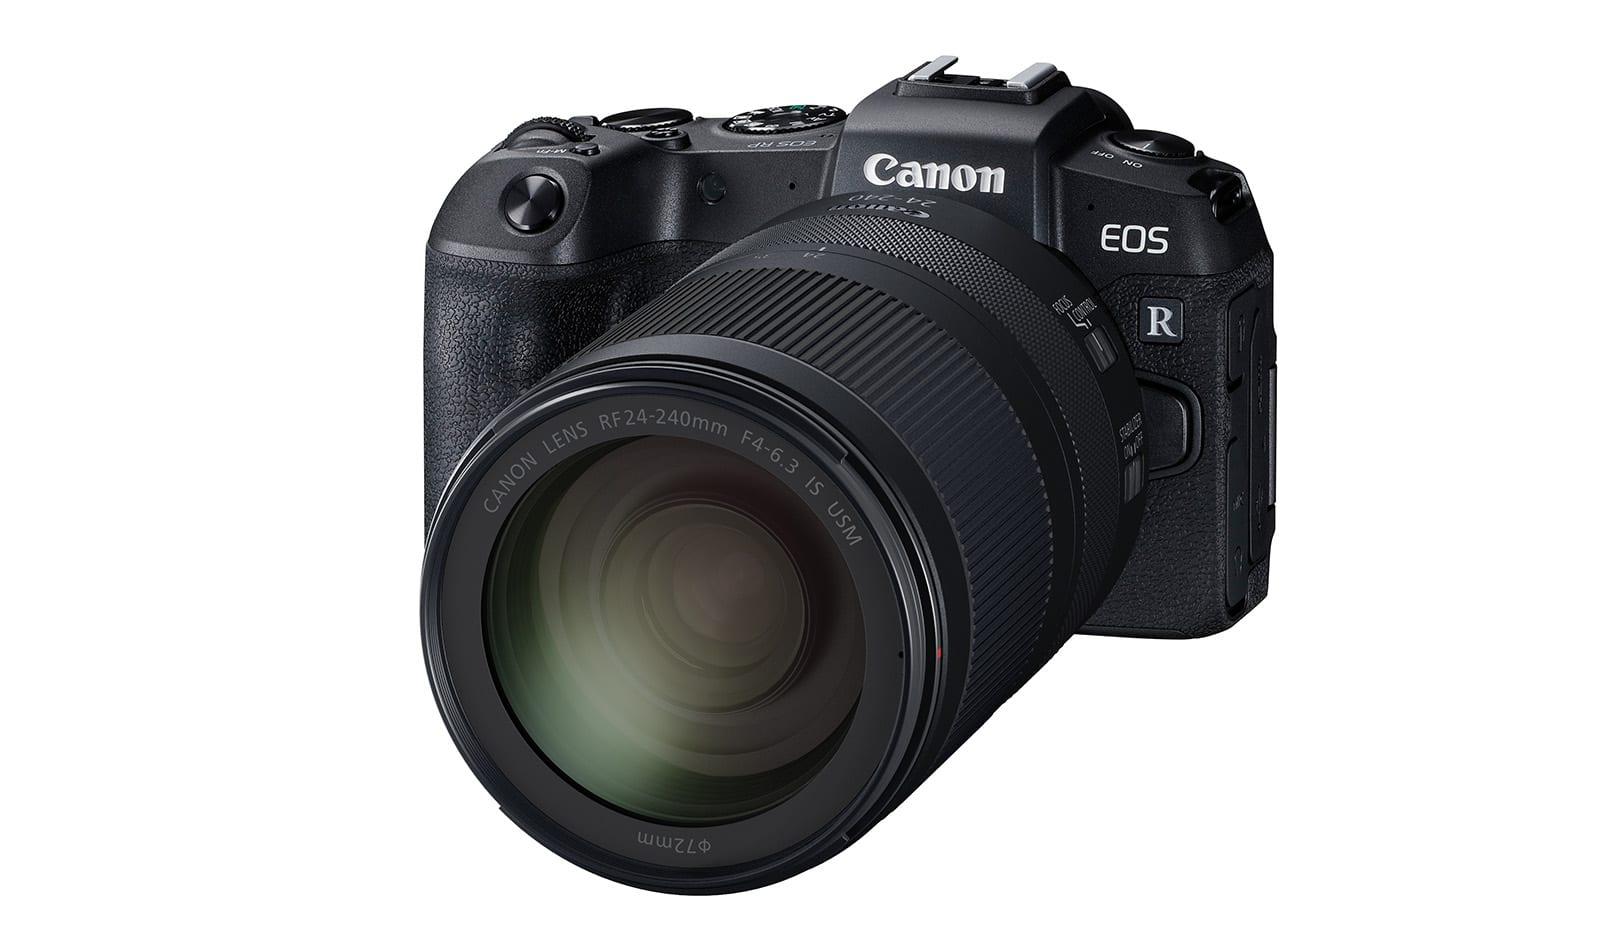 Canon EOS RP with 24-240 f/4-6.3 IS lens